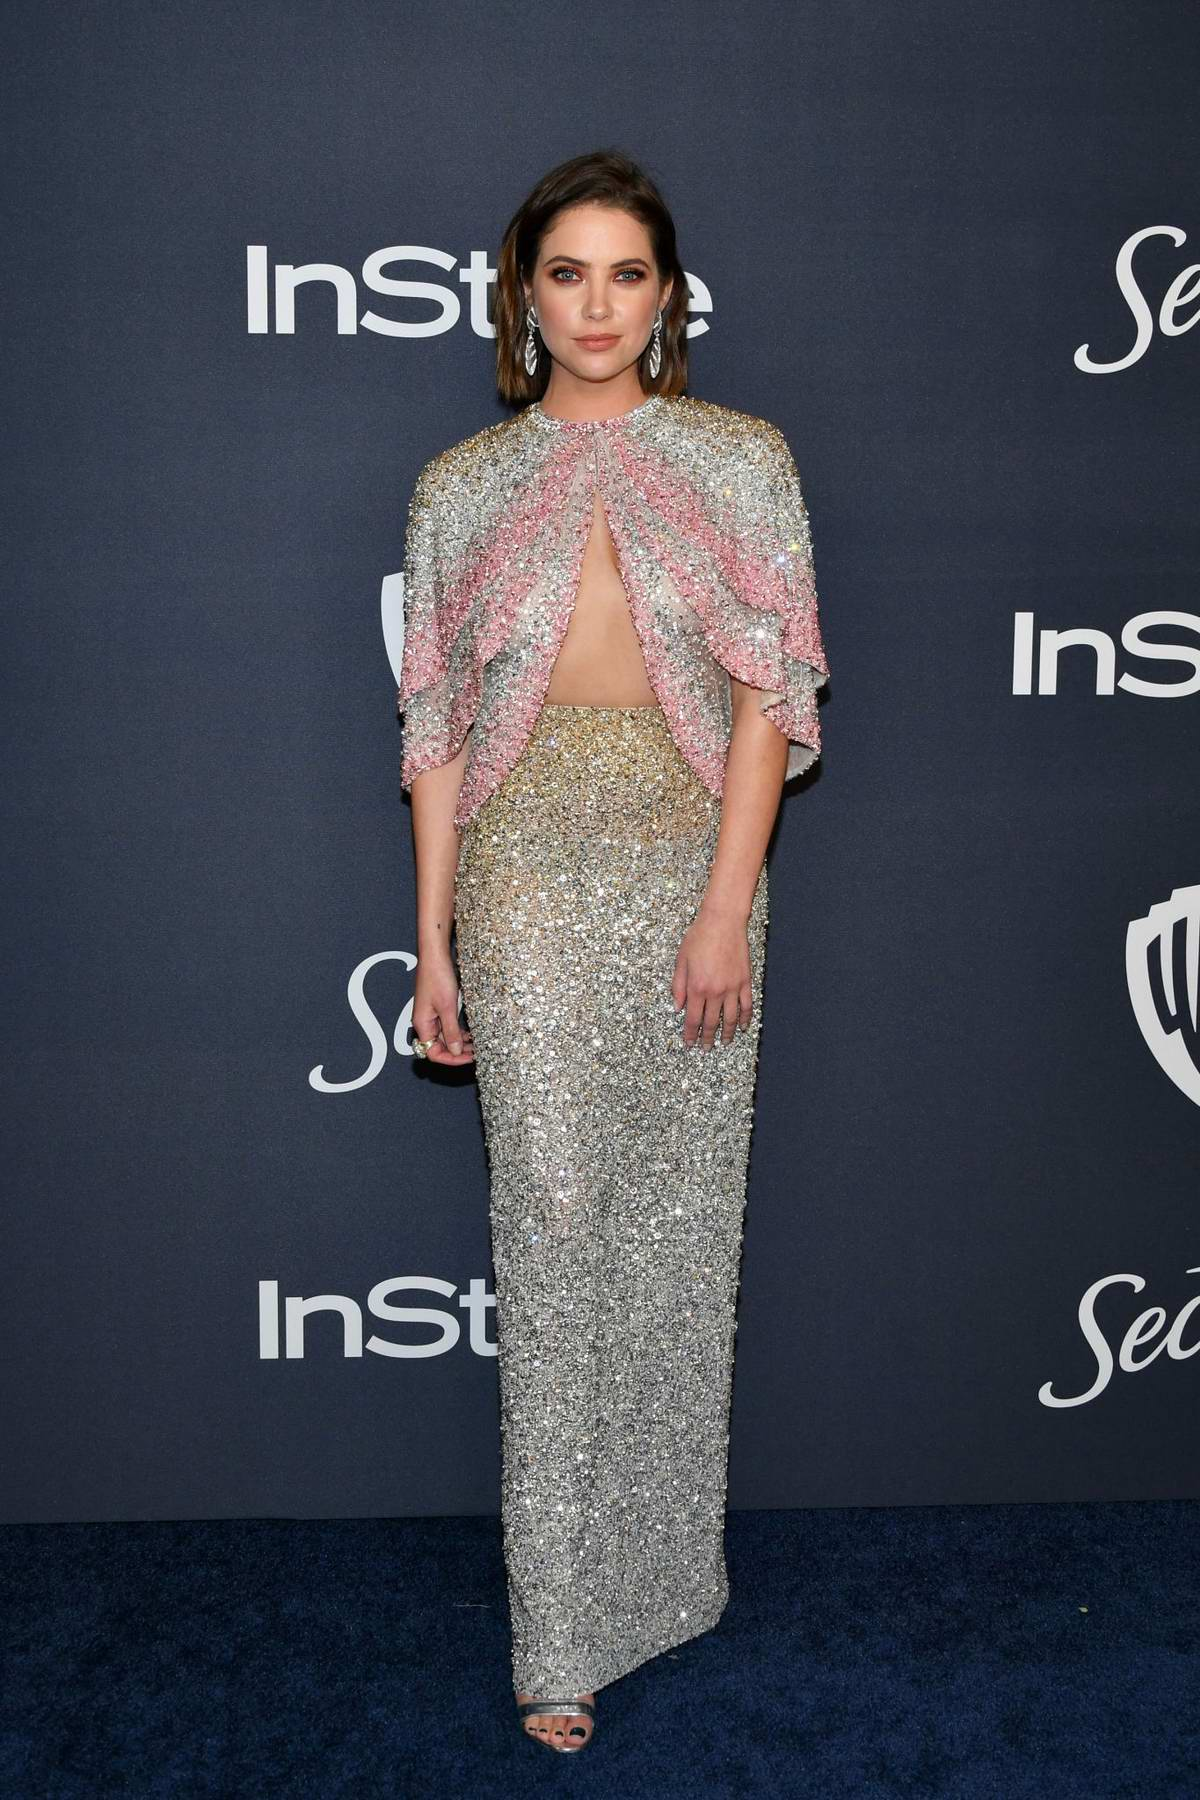 Ashley Benson attends the 21st annual Warner Bros and InStyle Golden Globe After-Party in Beverly Hills, California